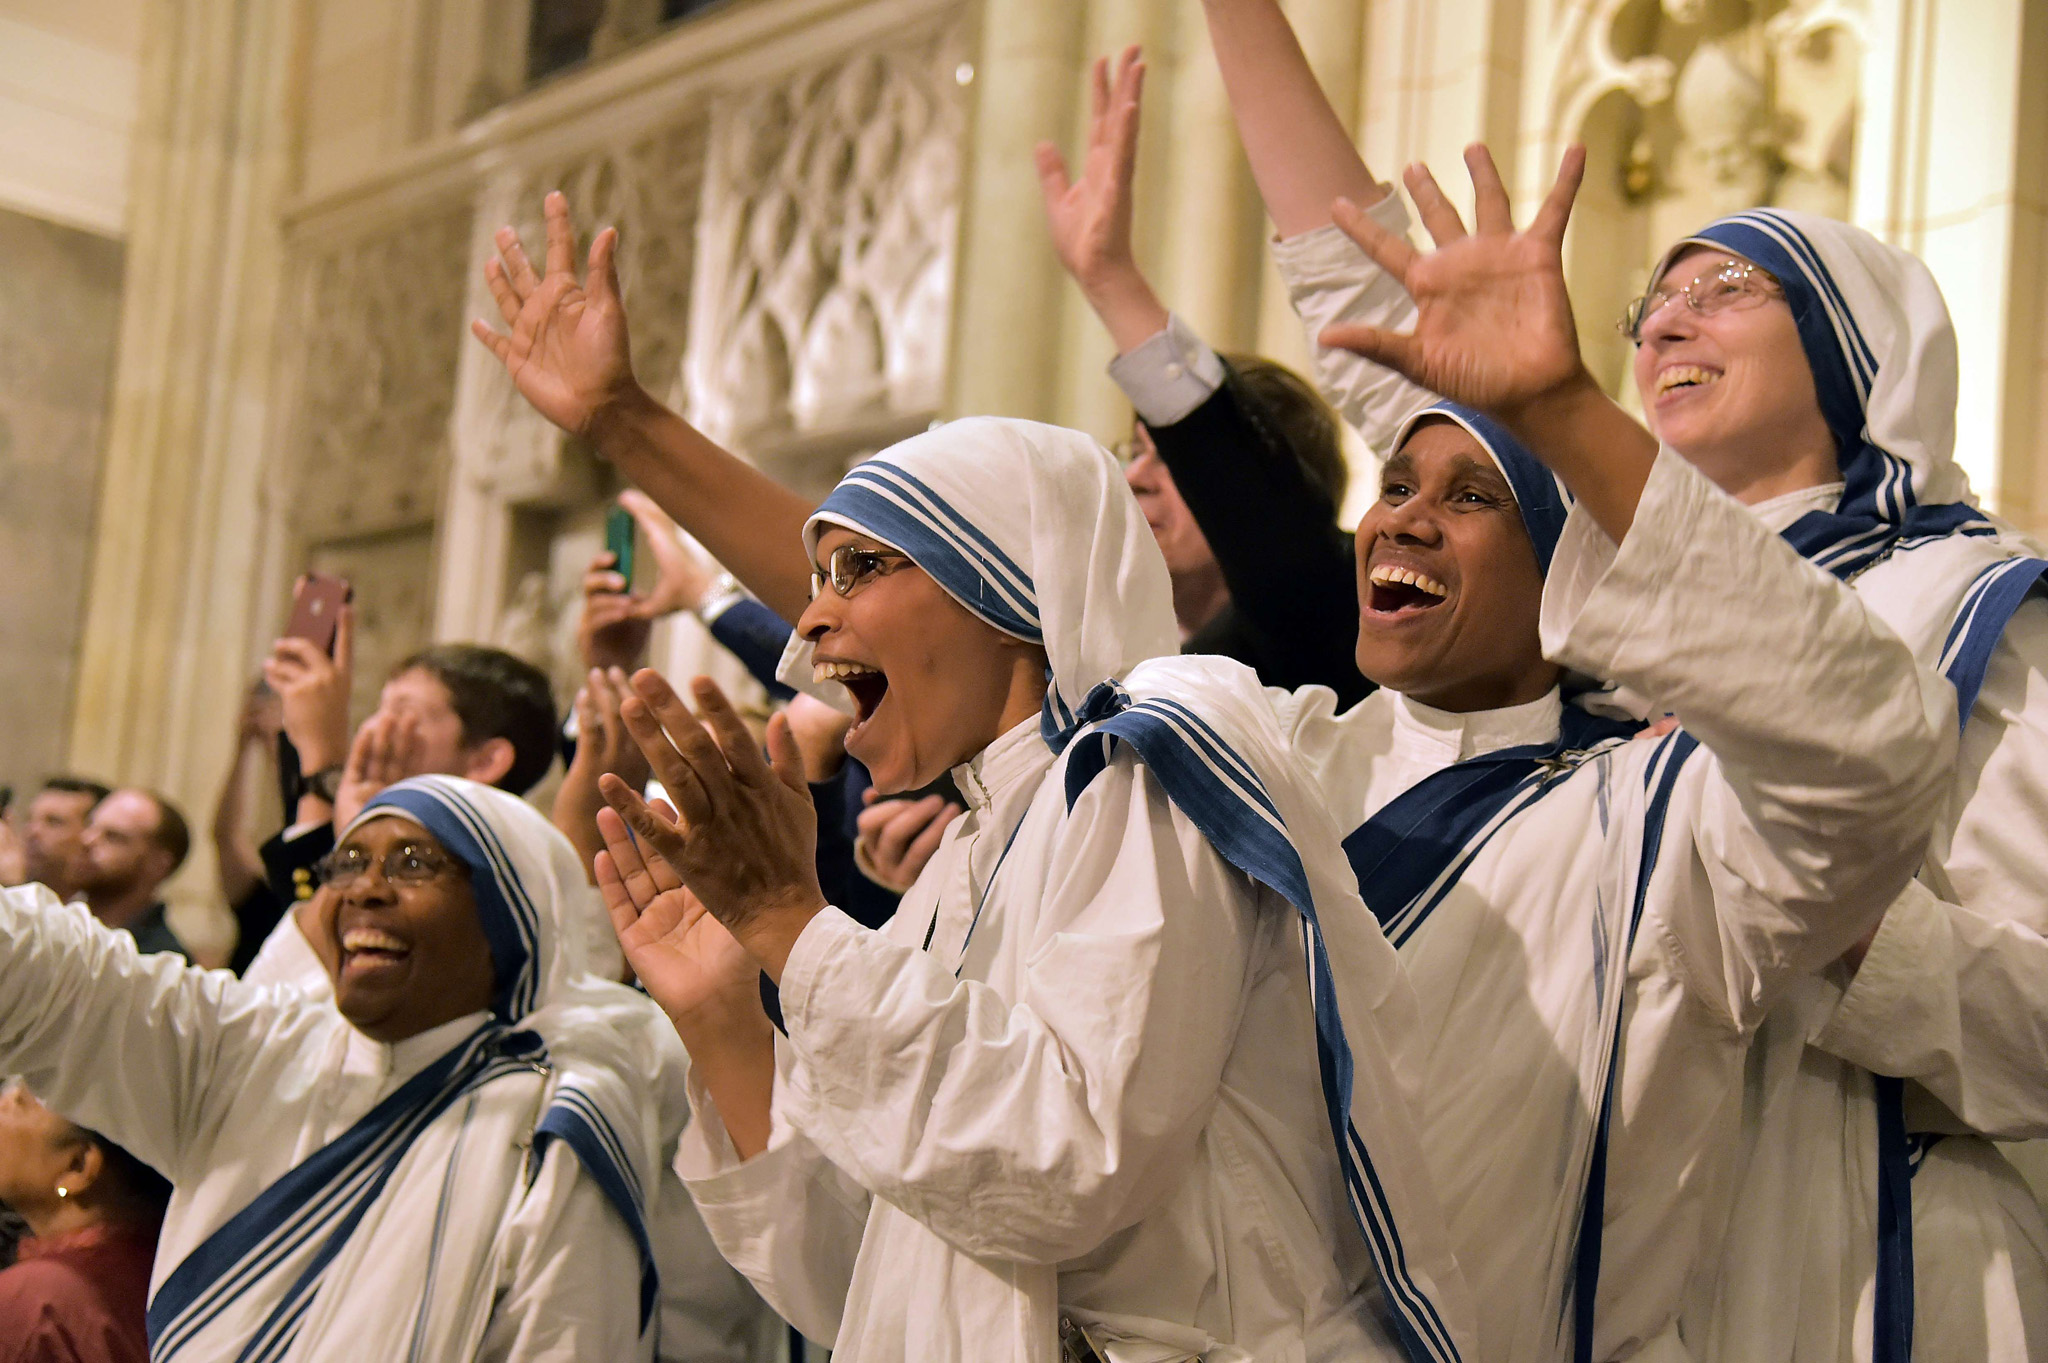 Nuns celebrate as they wait for the arrival of Pope Francis at St Patrick's Cathedral in New York yesterday